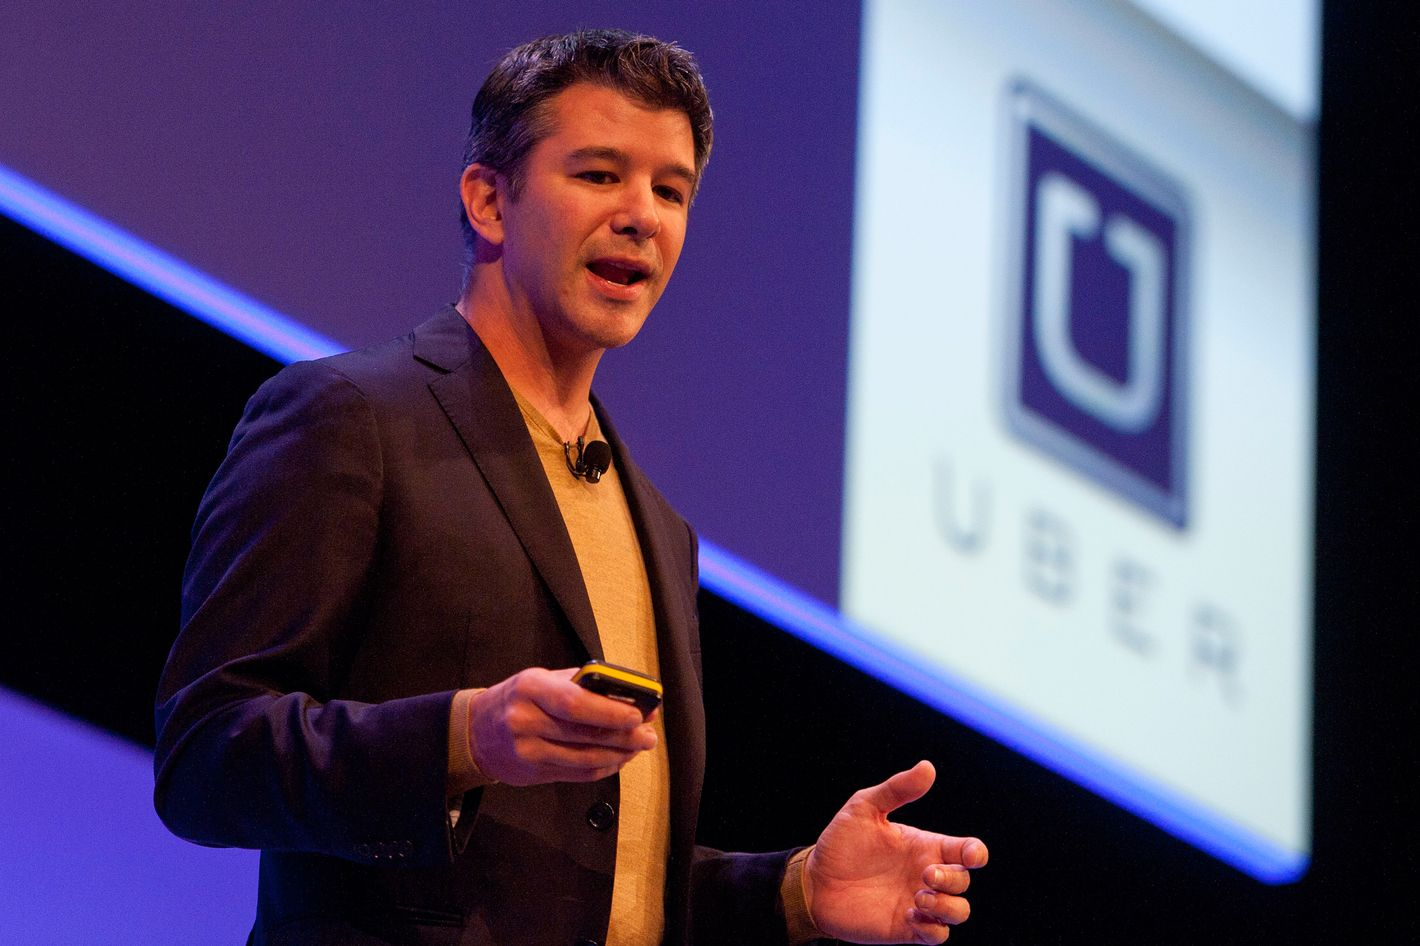 epa04430044 Travis Kalanick, Founder and CEO of Uber, delivers a speech at the Institute of Directors Convention at the Royal Albert Hall, Central London, Britain, 03 October 2014. The annual convention brings together business leaders and politicians to discuss the business strategy and the world economy.  EPA/WILL OLIVER